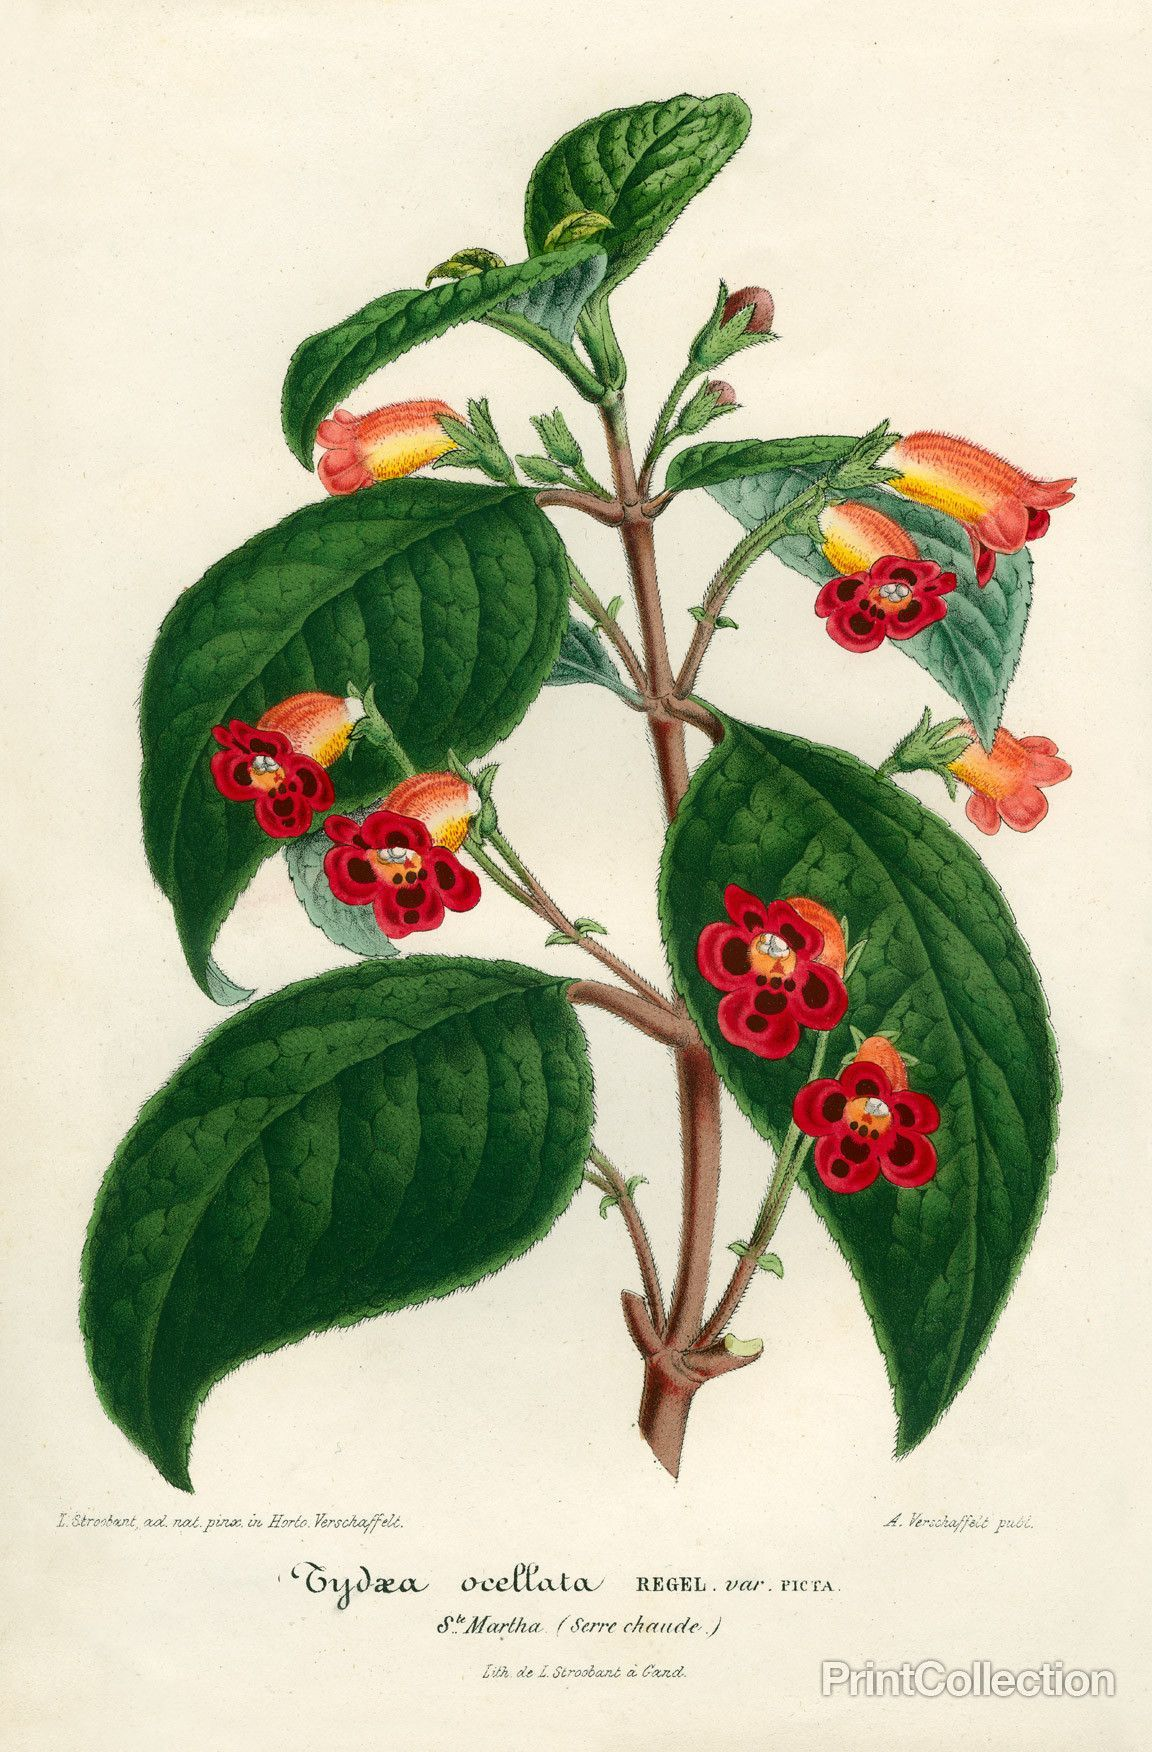 Botanische Serre Print Collection Kohleria Of Central America Botanical Prints